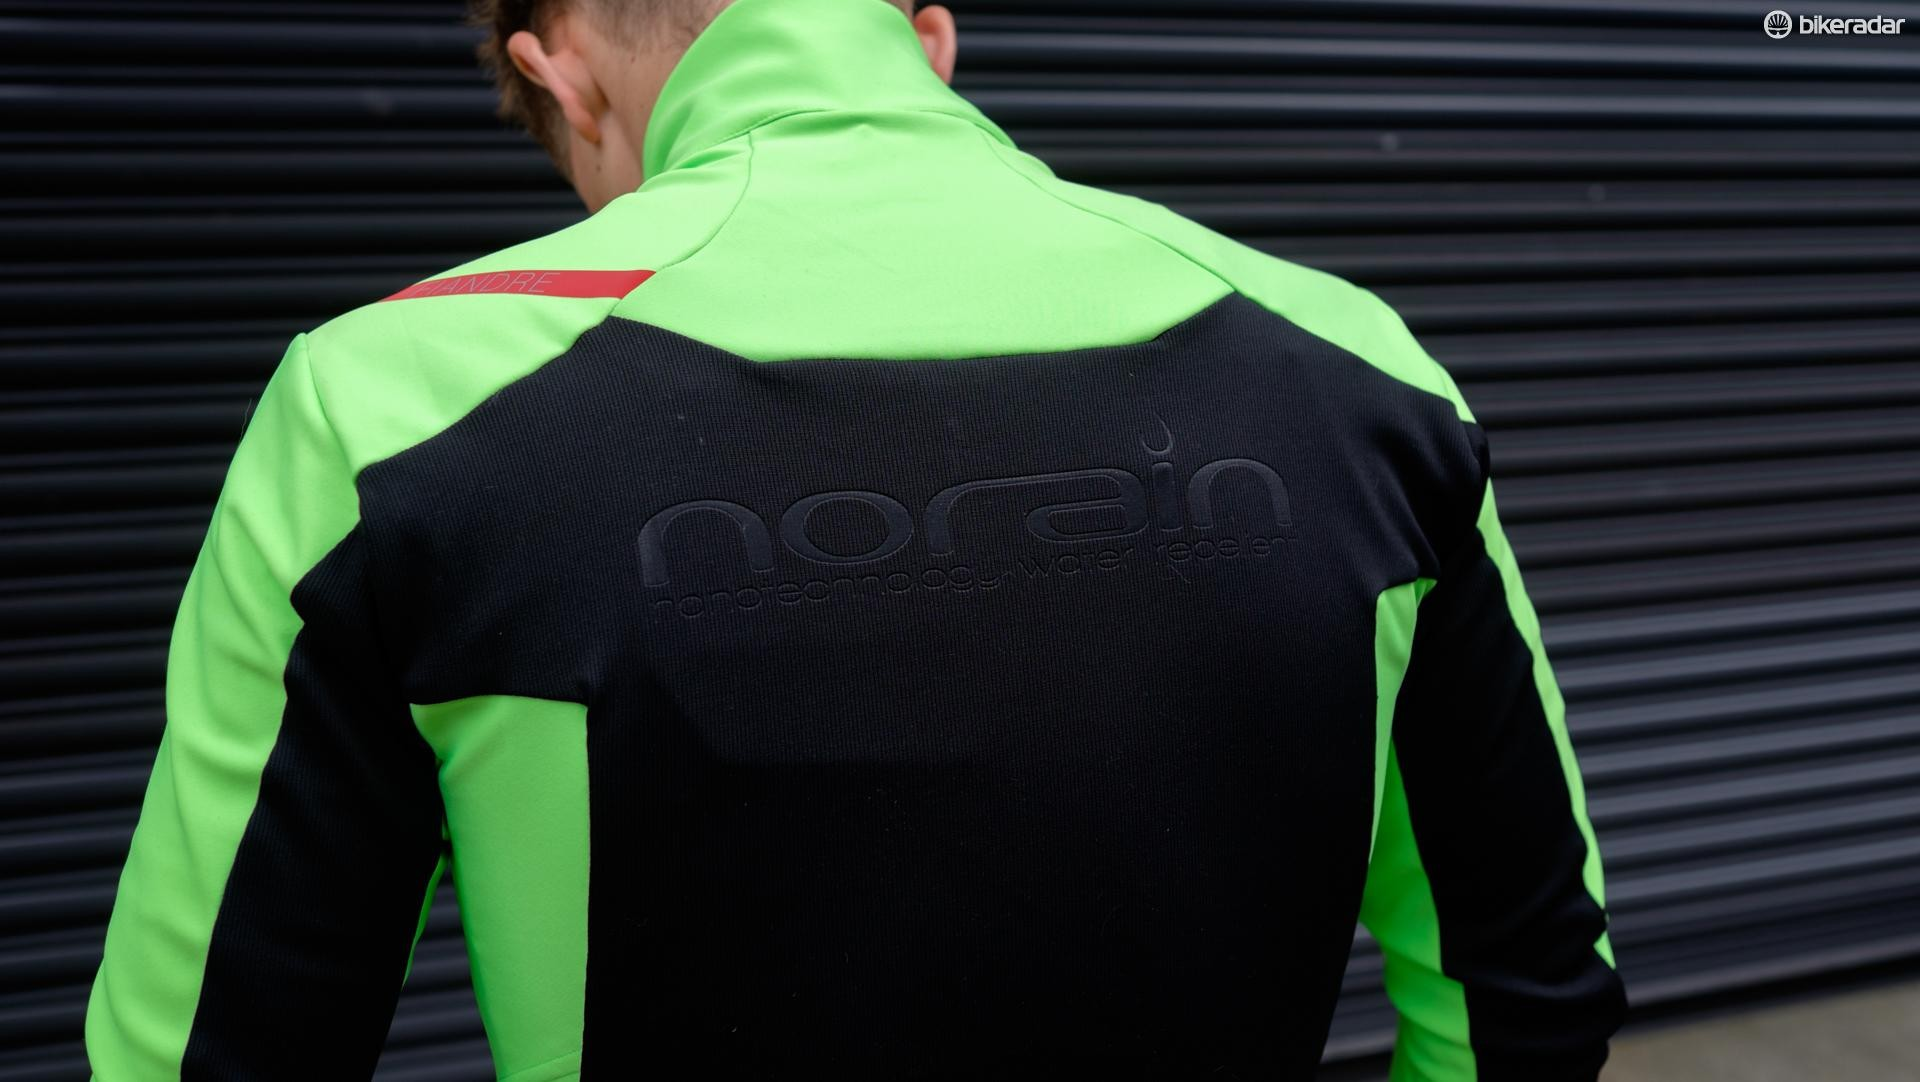 The rear panel is constructed from NoRain material for water repellent breathability